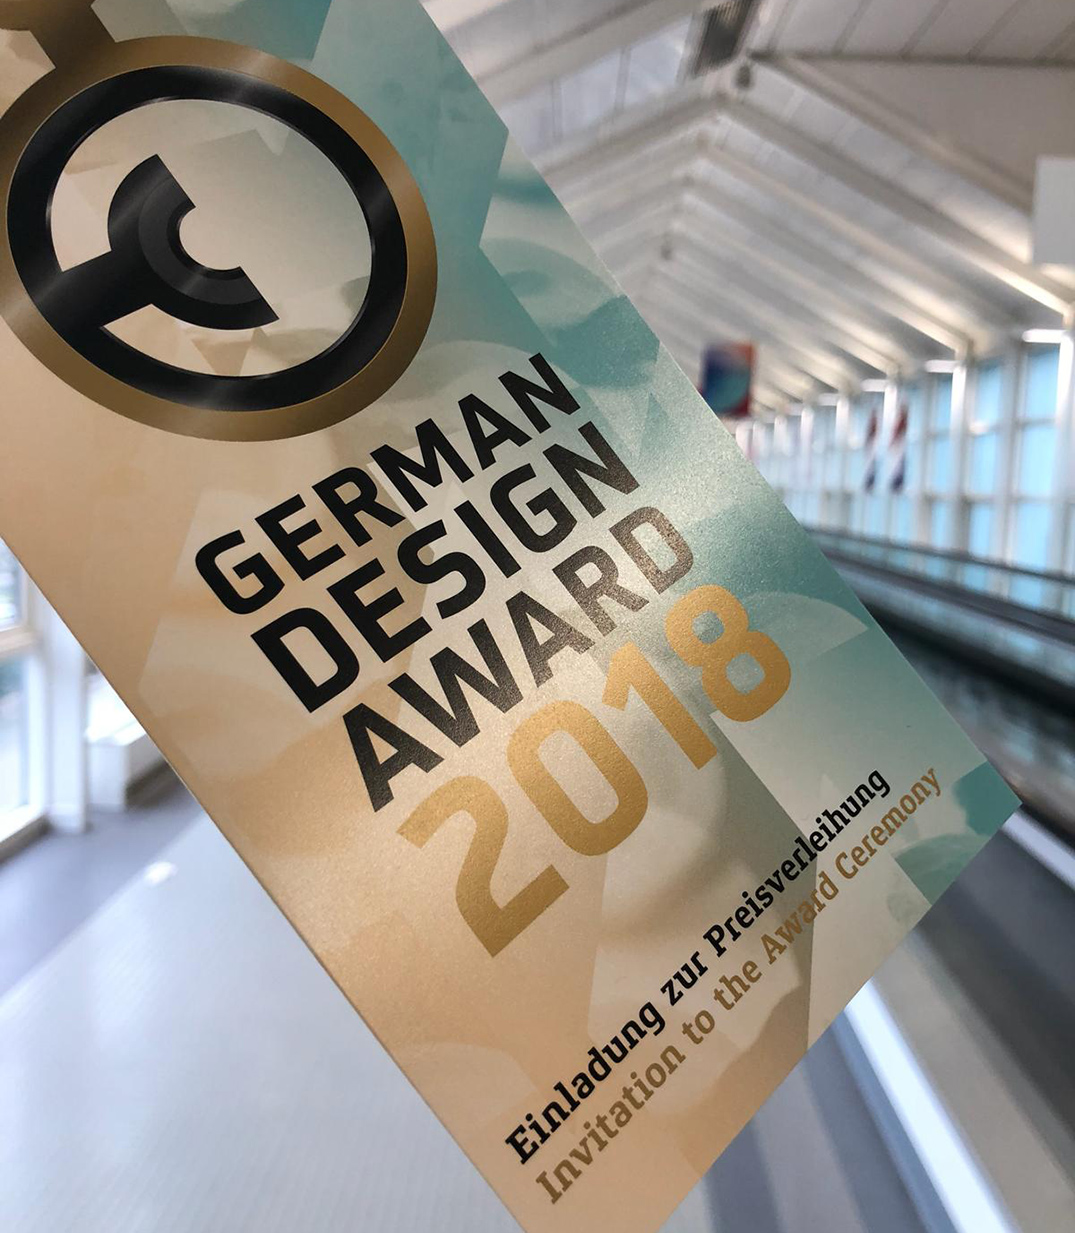 Ceremonia de entrega de los premios German Design Award 2018